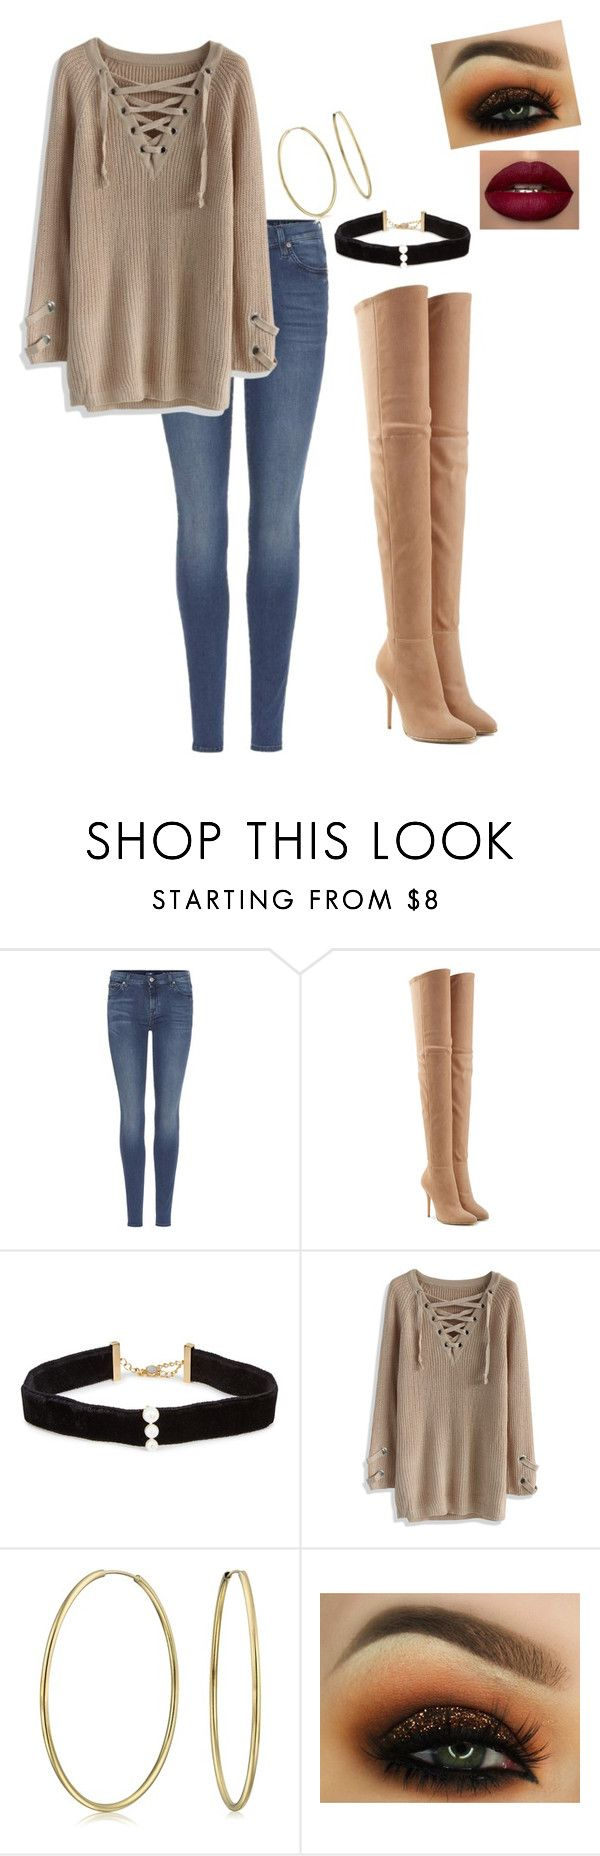 """""""OOTD for tomorrow: last day of school and finals before Xmas break"""" by vireheart ❤ liked on Polyvore featuring 7 For All Mankind, Balmain, Anissa Kermiche, Chicwish and Bling Jewelry"""